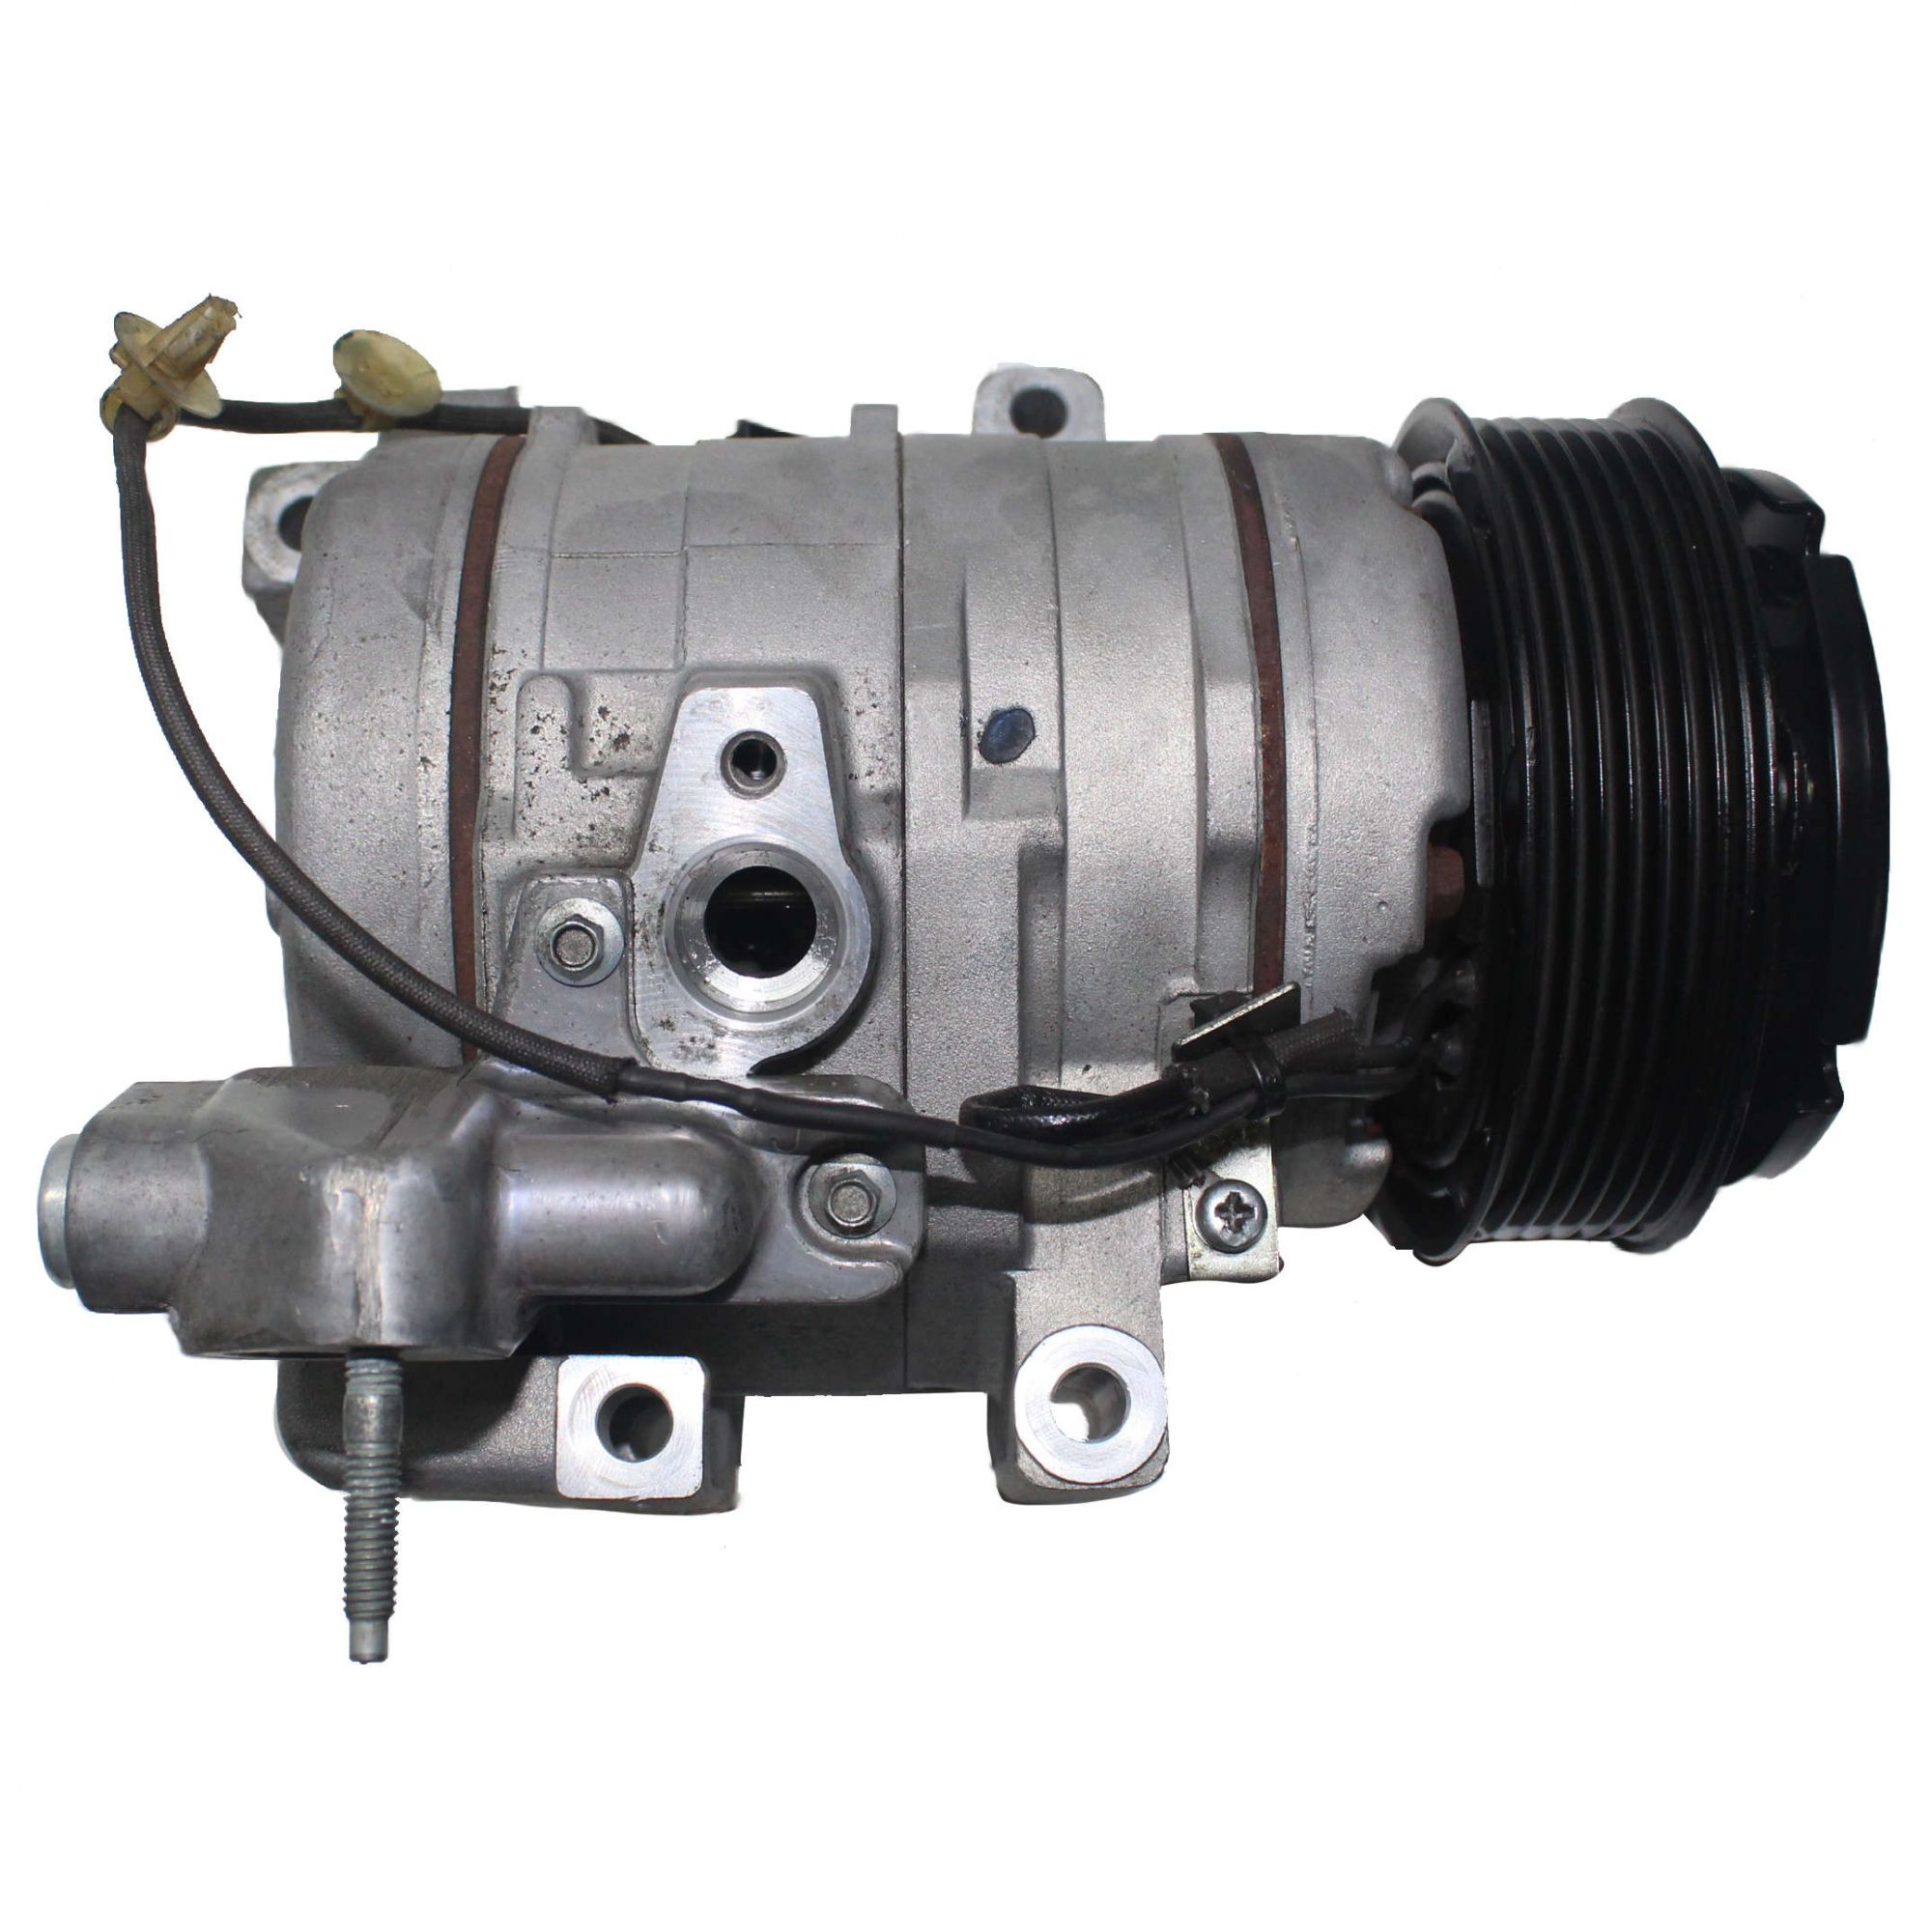 Compressor Ar Condicionado Denso Civic 06...09